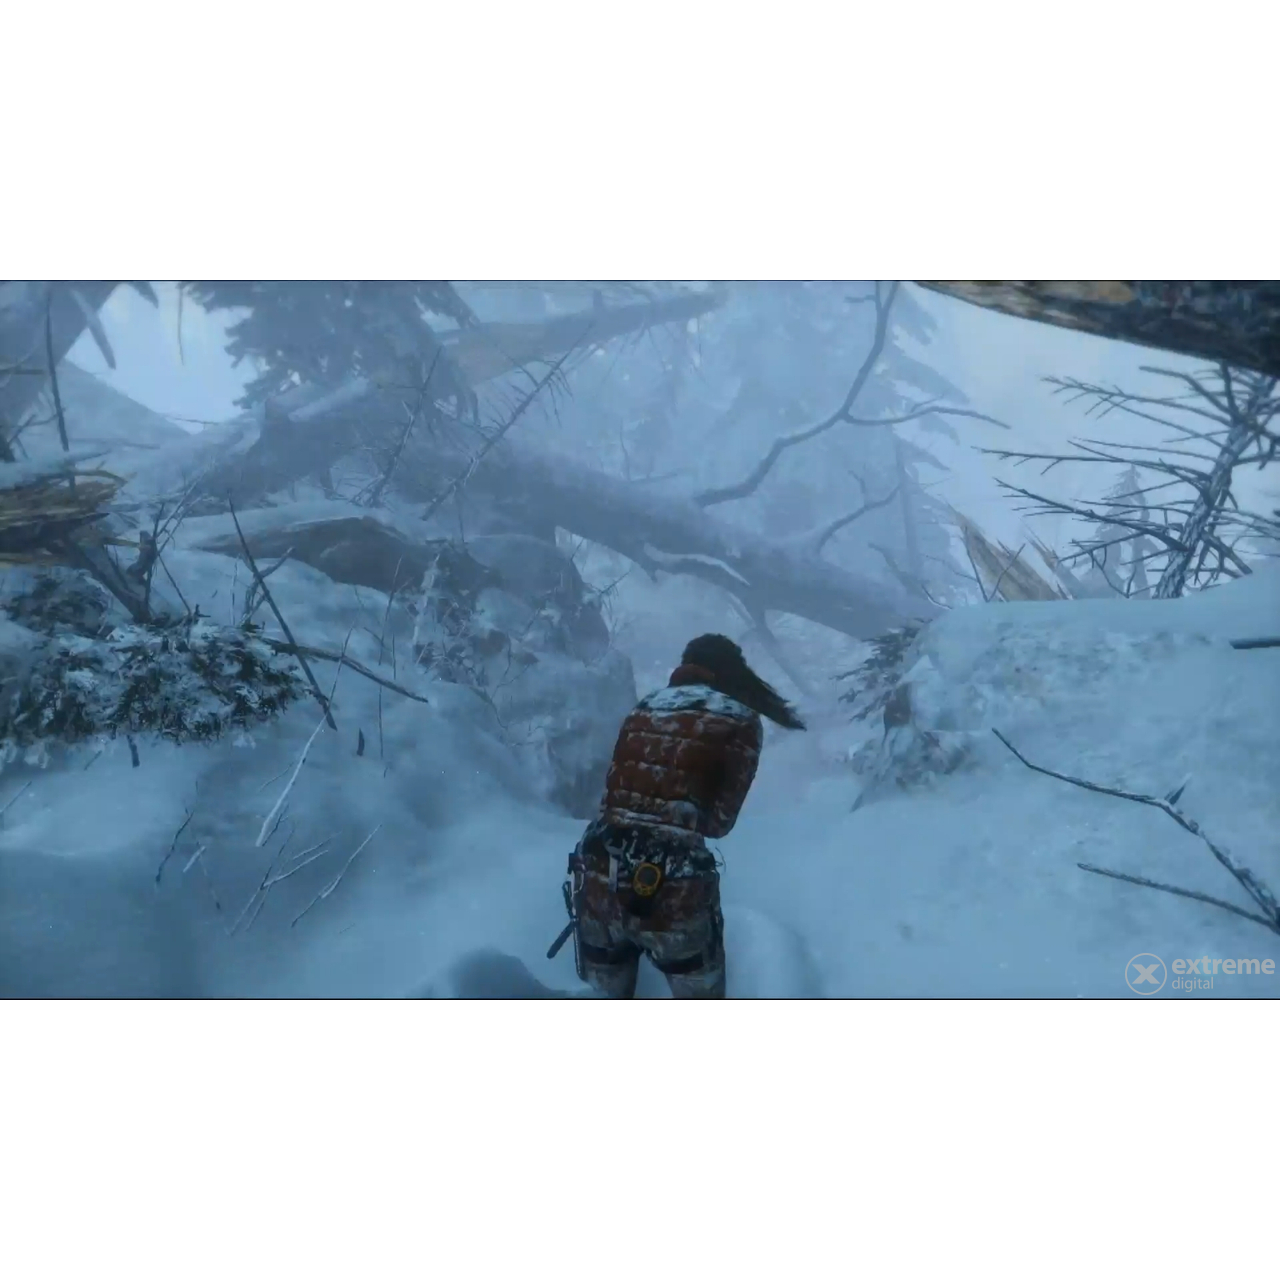 rise-of-the-tomb-raider-xbox-one-jatekszoftver_7468a49e.jpg